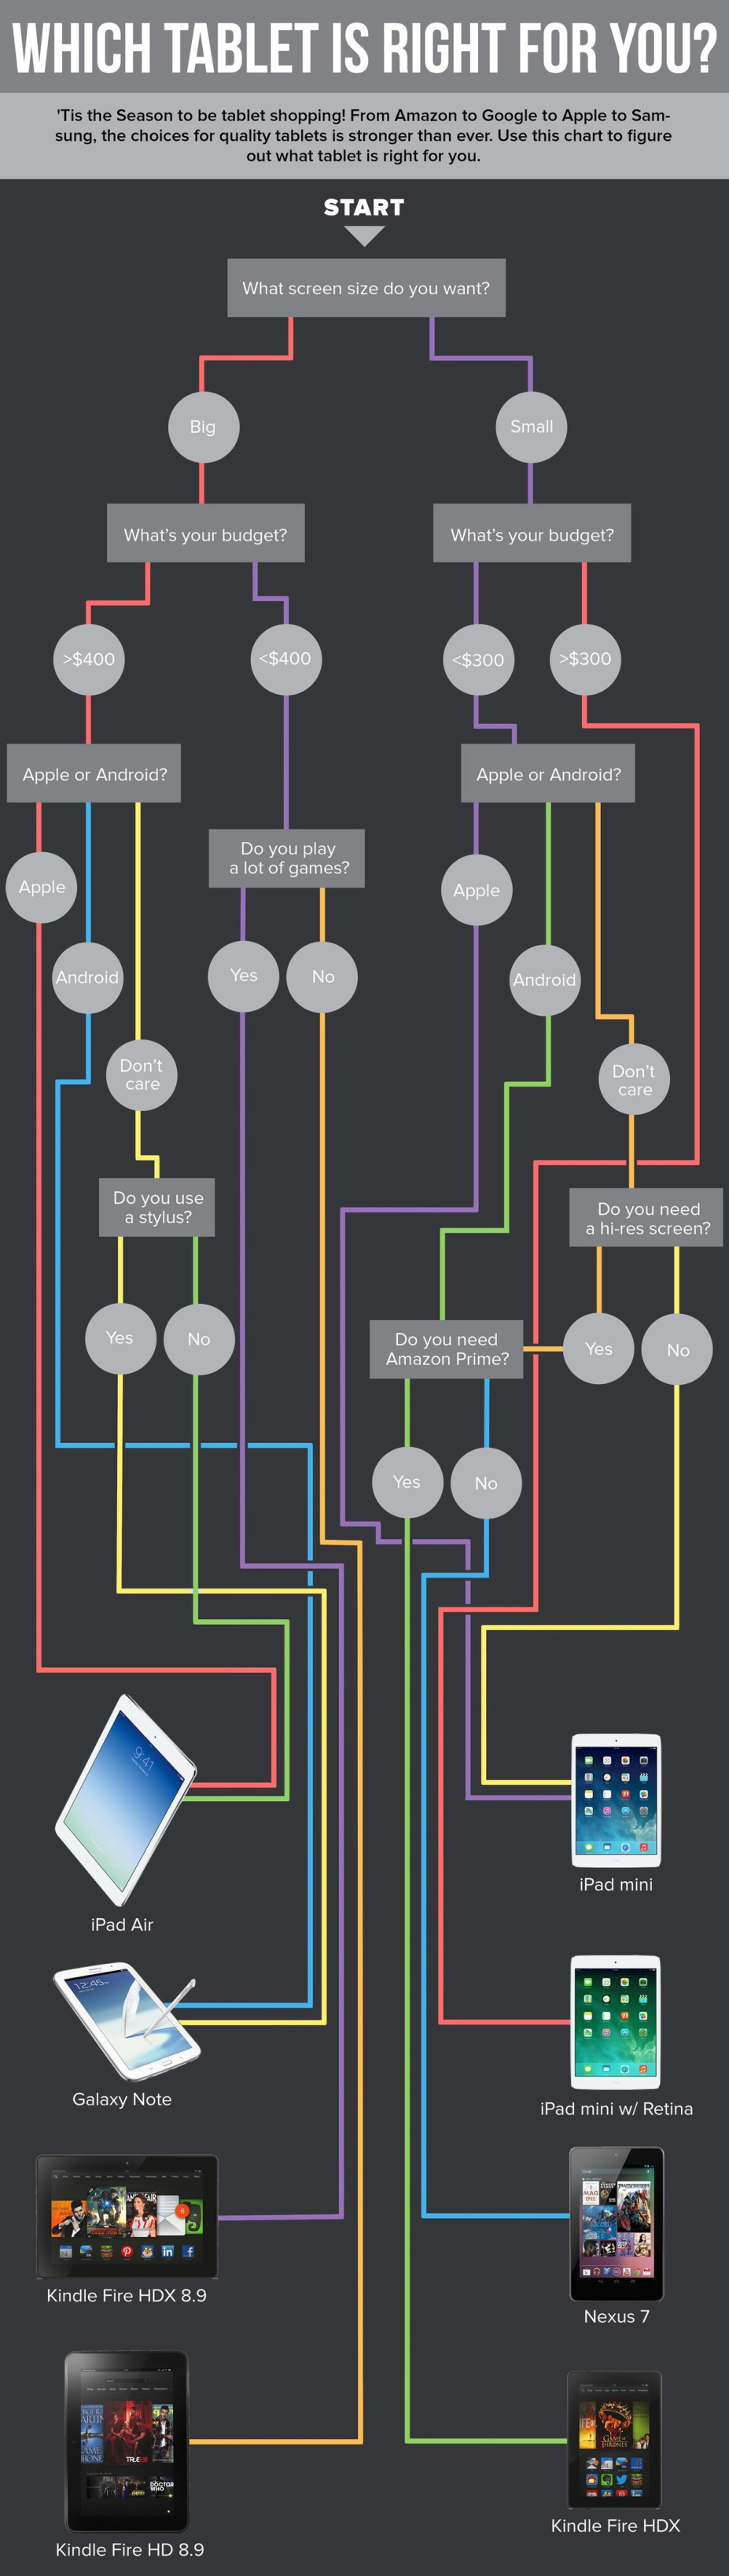 What Tablet Are You Flowchart REVISED THURSDAY From iPad mini to Galaxy Note: What is most important to you in a tablet?